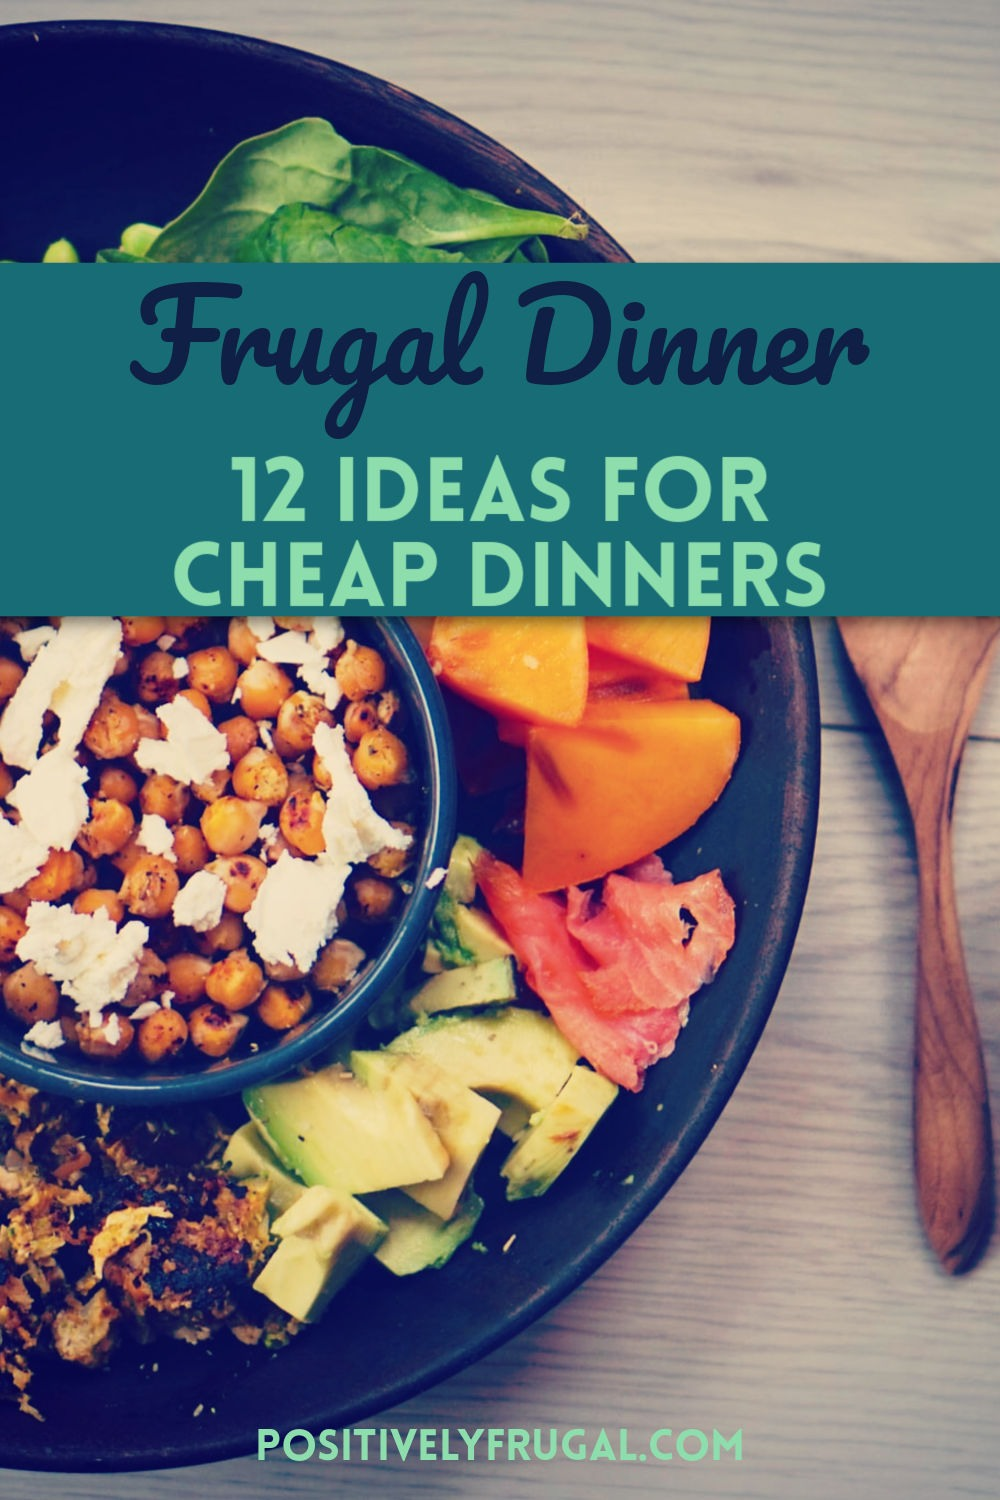 Frugal Dinner Cheap Dinners by PositivelyFrugal.com